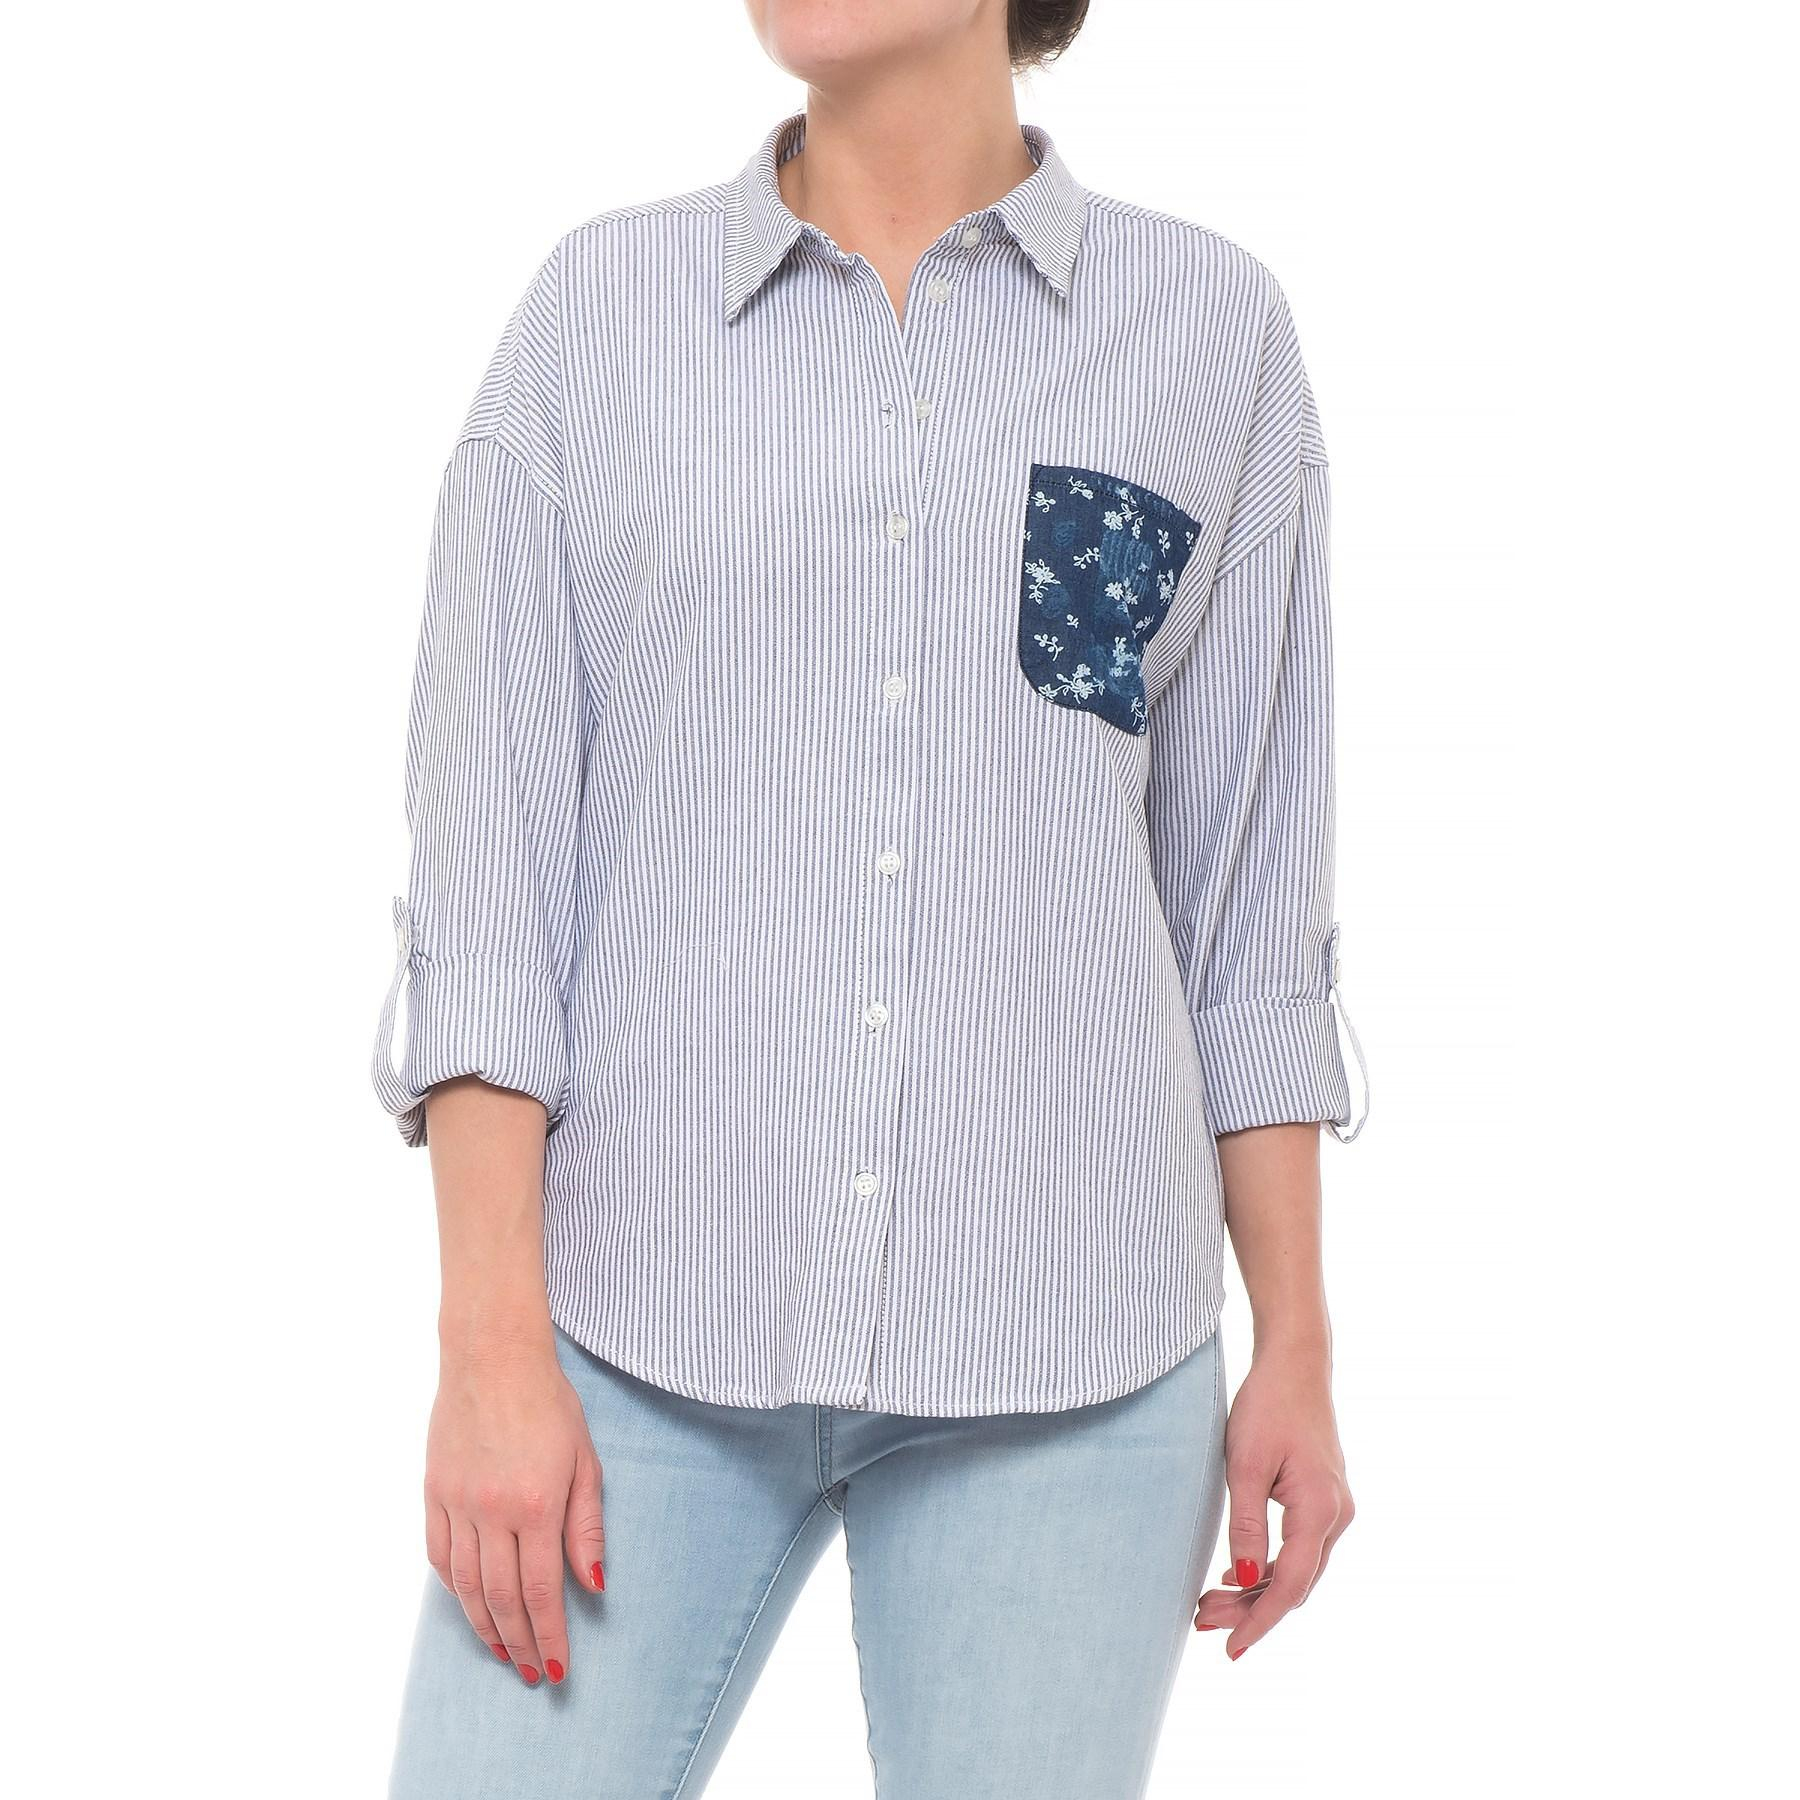 a3a2227f9f Lyst - Velvet Heart Button Down Patch Pocket Shirt in Blue